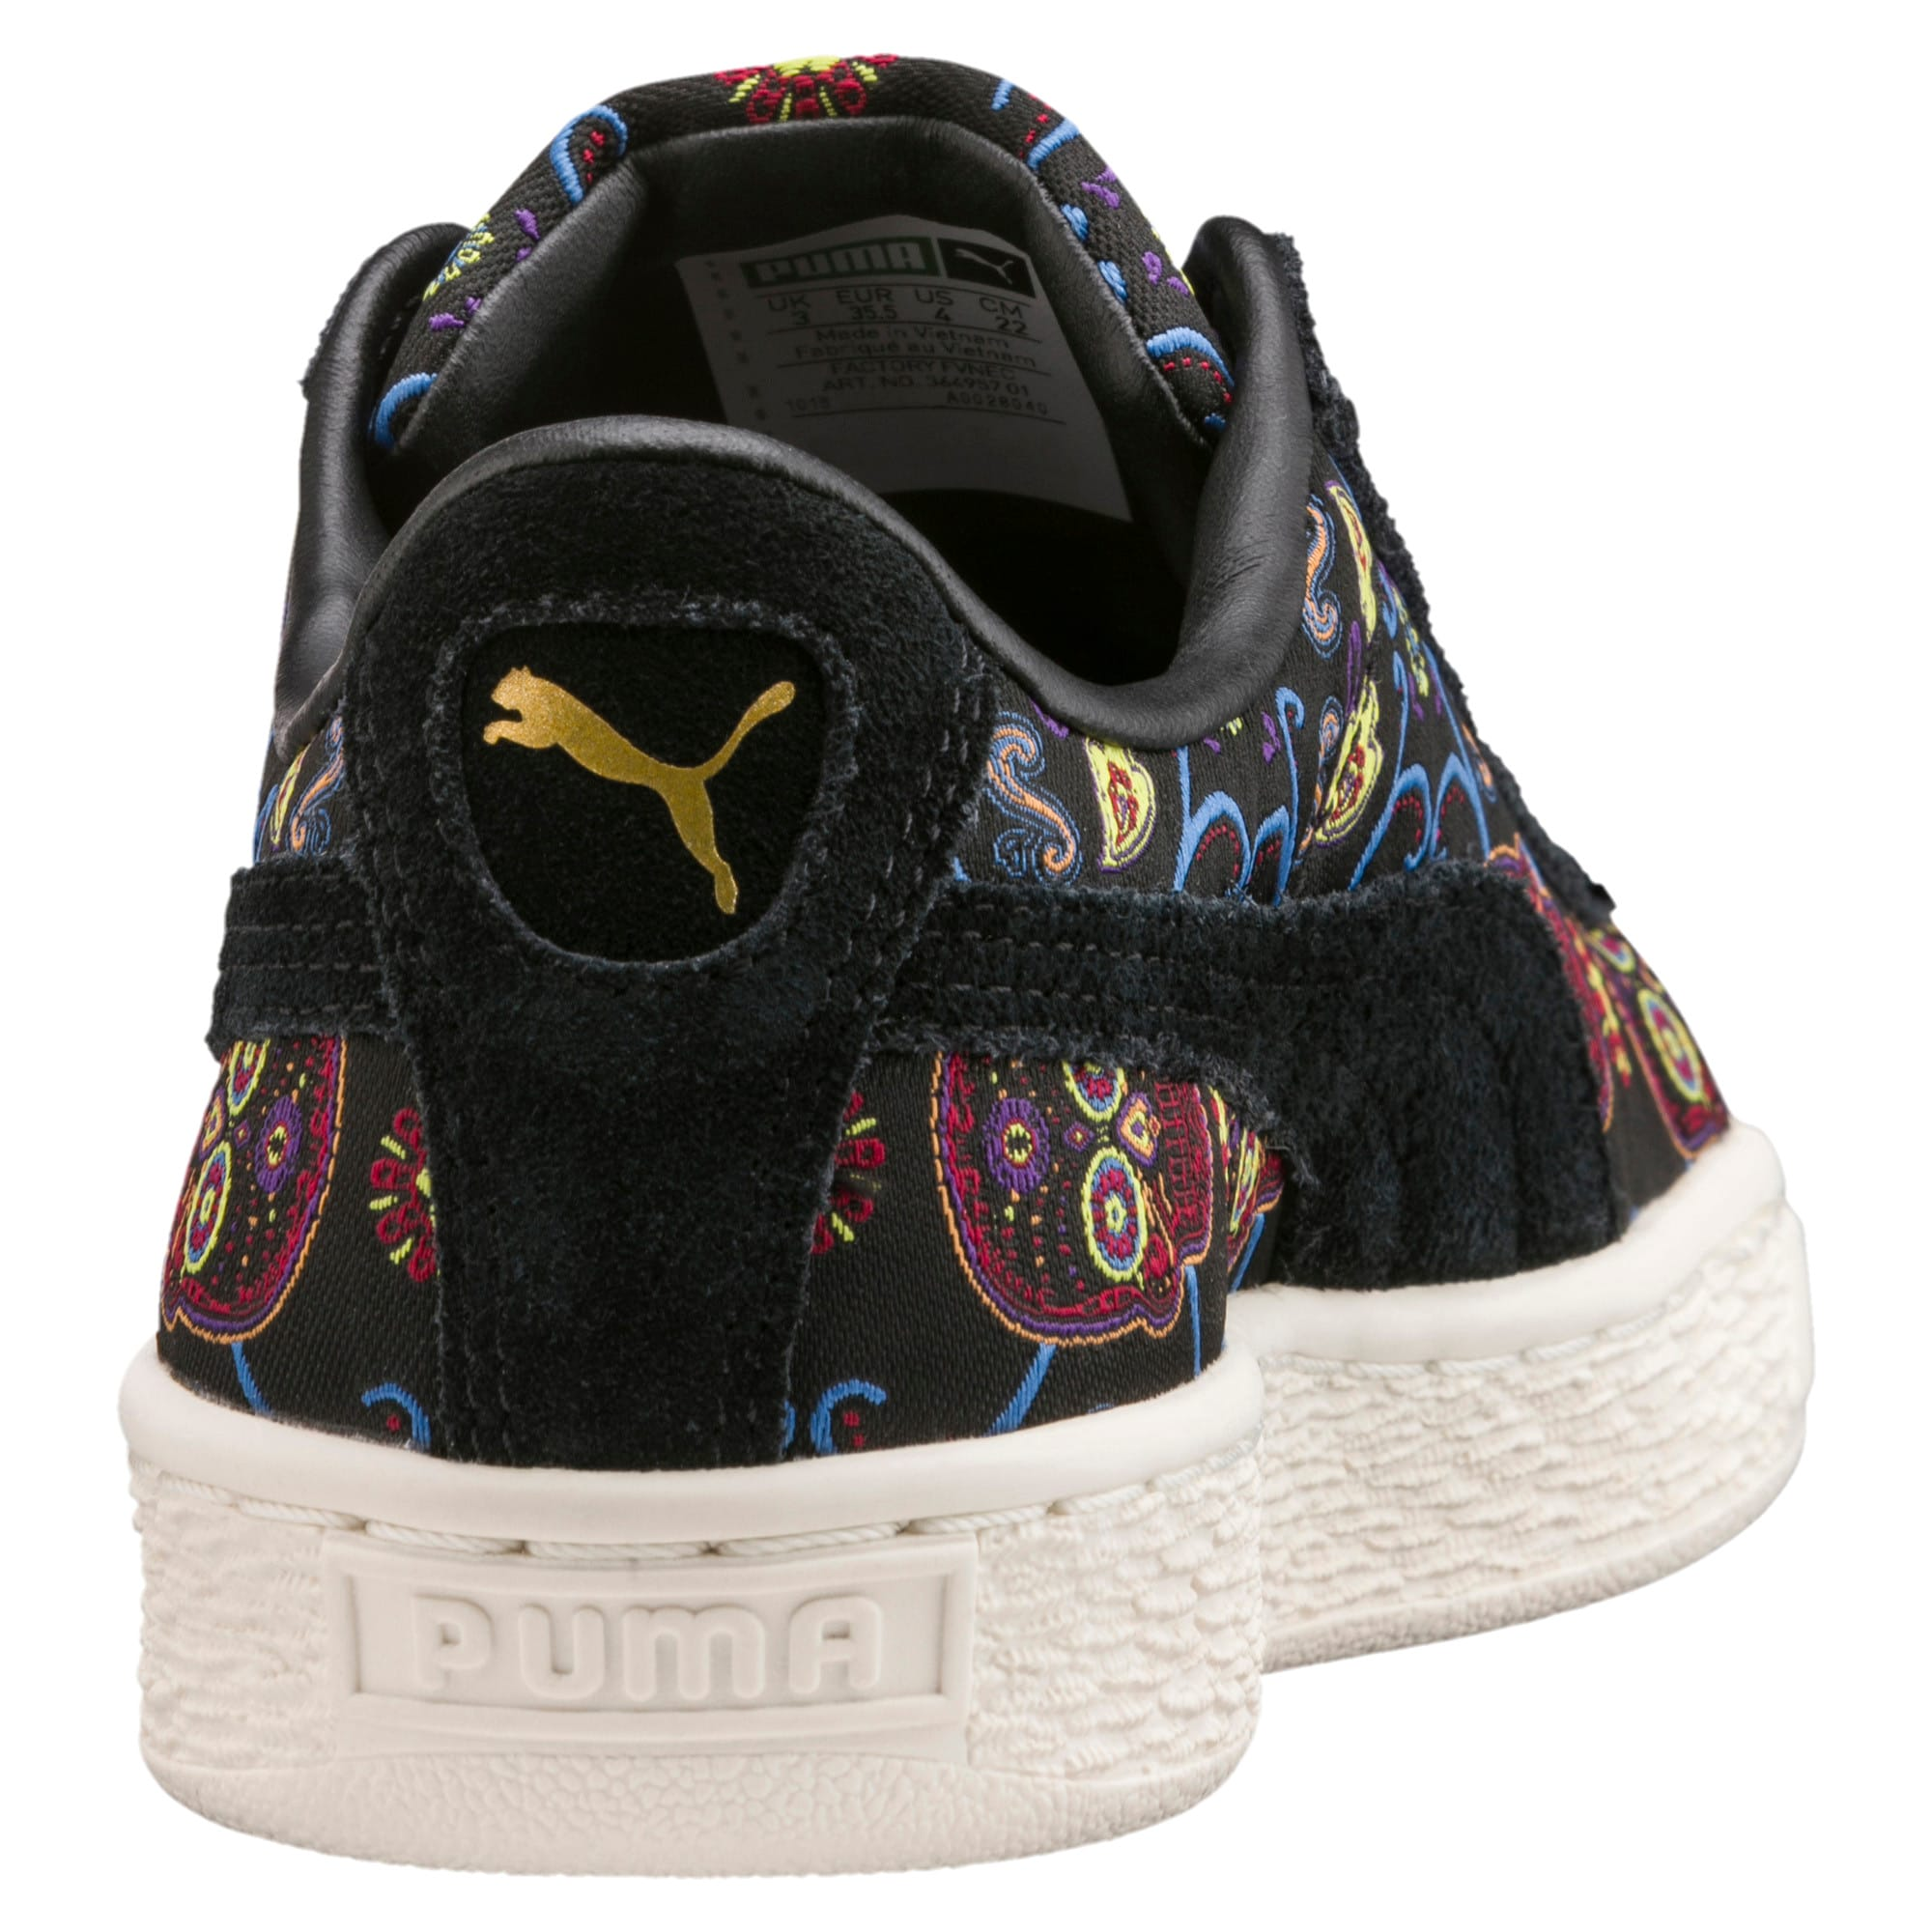 Basket Classic Day Of The Dead Little Kids' Shoes